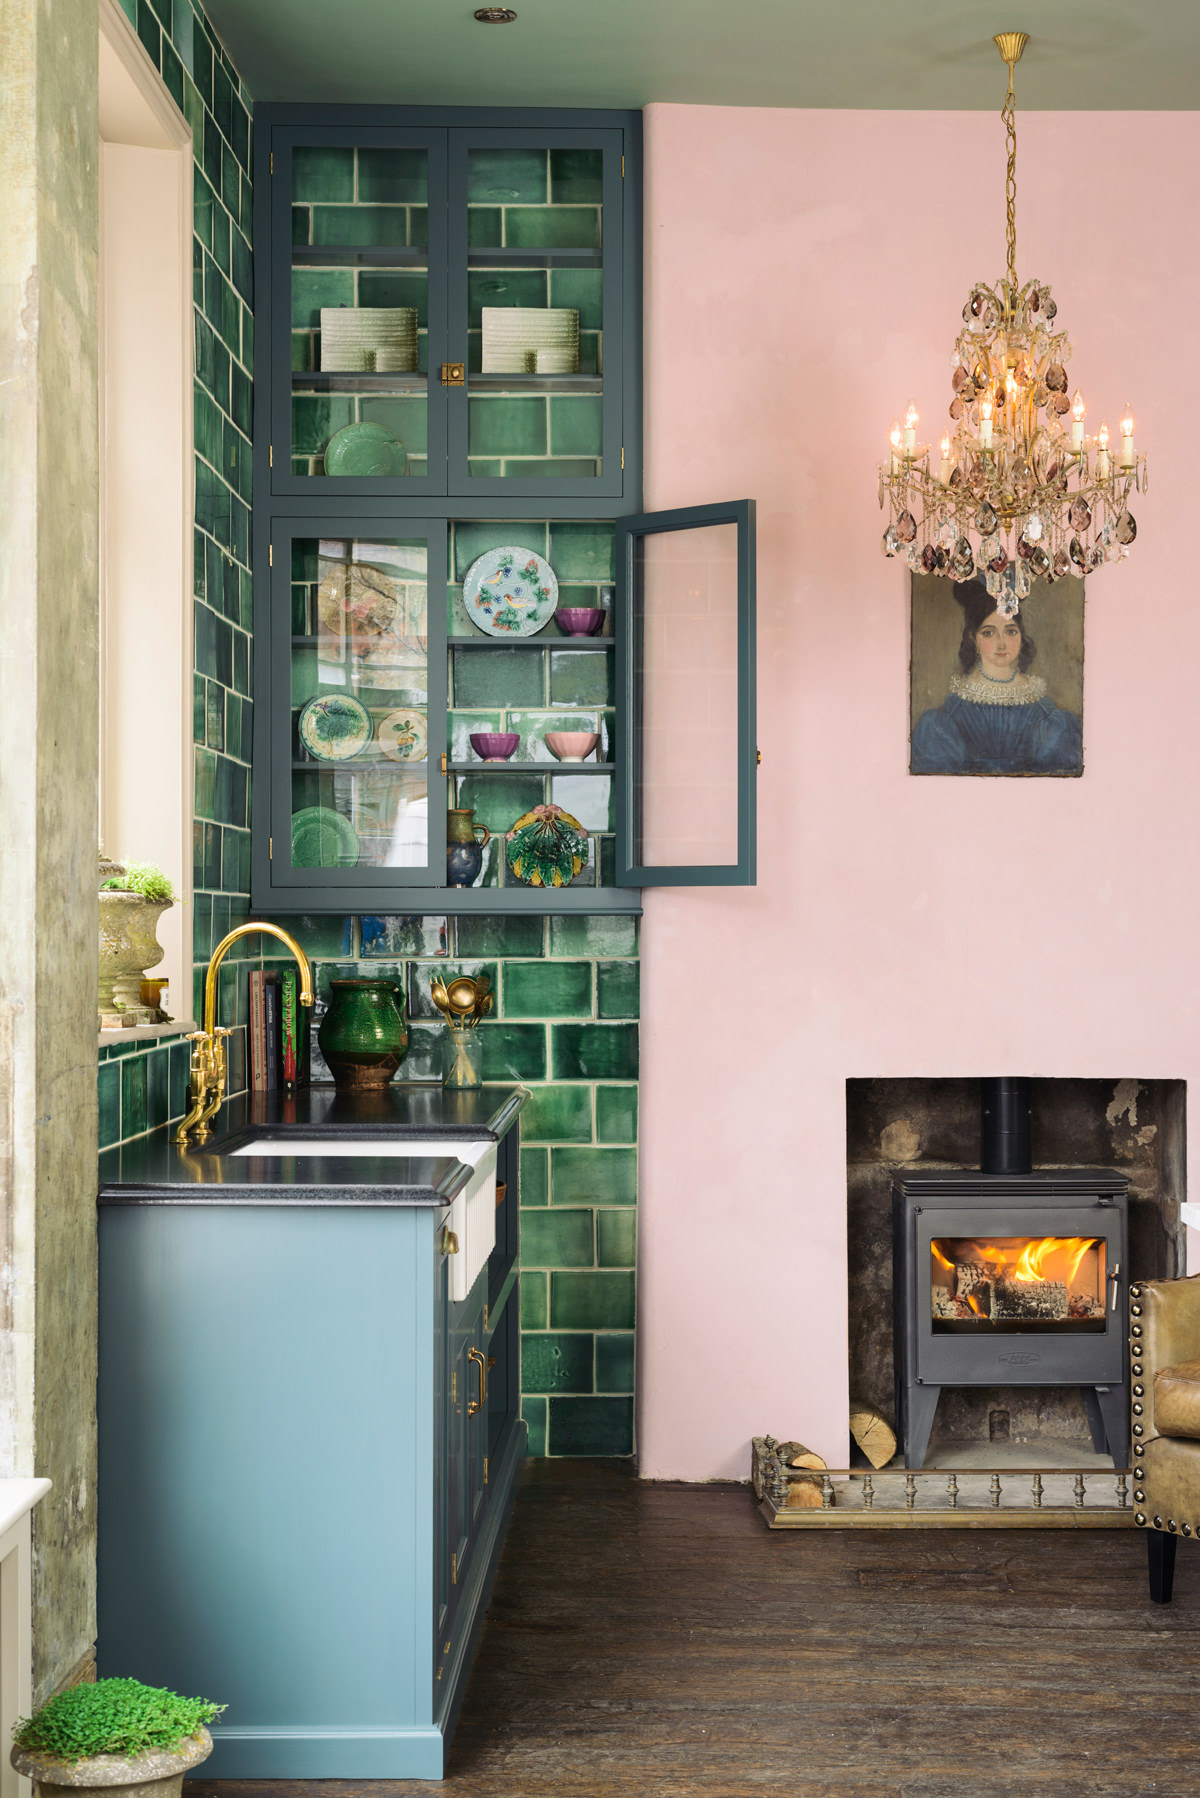 Green Tile Pink Kitchen | Devols Kitchen Showroom Clerkenwell London | 20 Photos That Will Prove Decorating with Pink and Green is the Next Big Thing